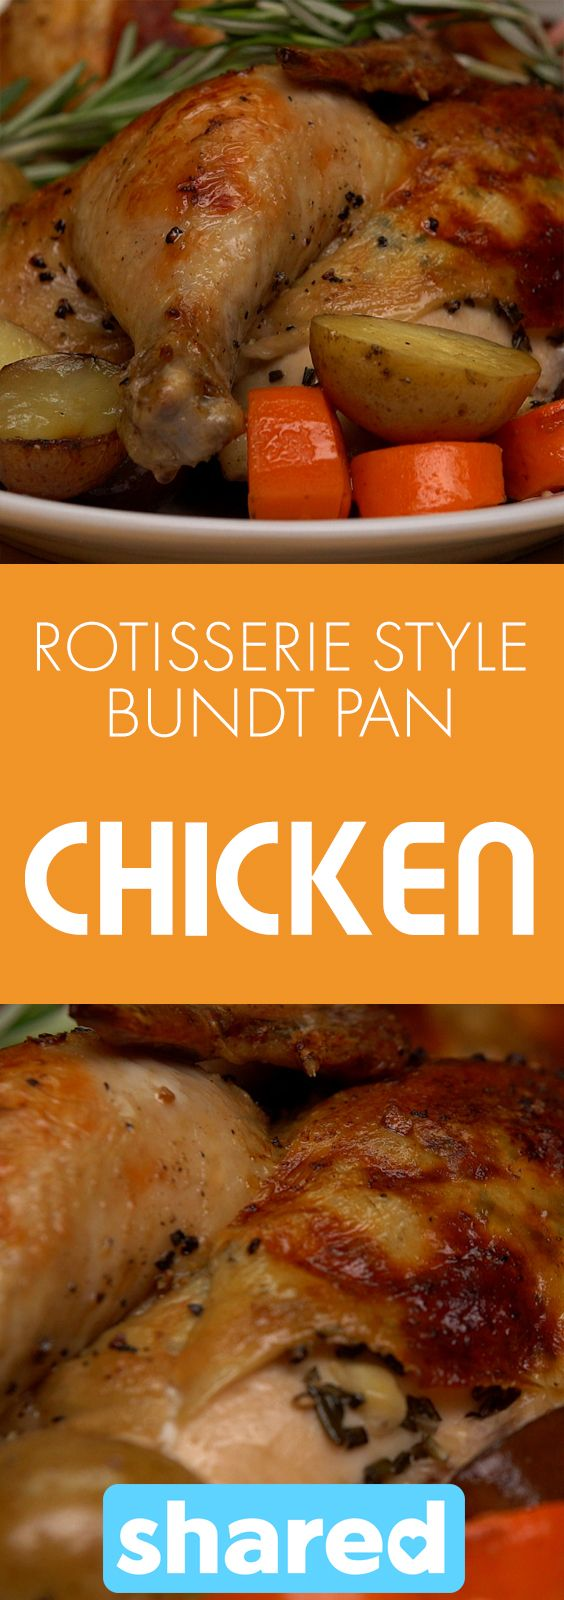 Anything that makes cooking dinner easier for me is a winner in my books. You may have made tons of one pan meals using just a baking sheet, but did you know your bundt pan has more uses than just for desserts? This Roasted Rotisserie Style Bundt Pan Chicken simplifies Sunday dinner like no other! Roast up your chicken and veggies all at once using just a bundt pan and a baking sheet to catch any extra drippings! The veggies soak up all the delicious flavor dripping from the chicken, and…